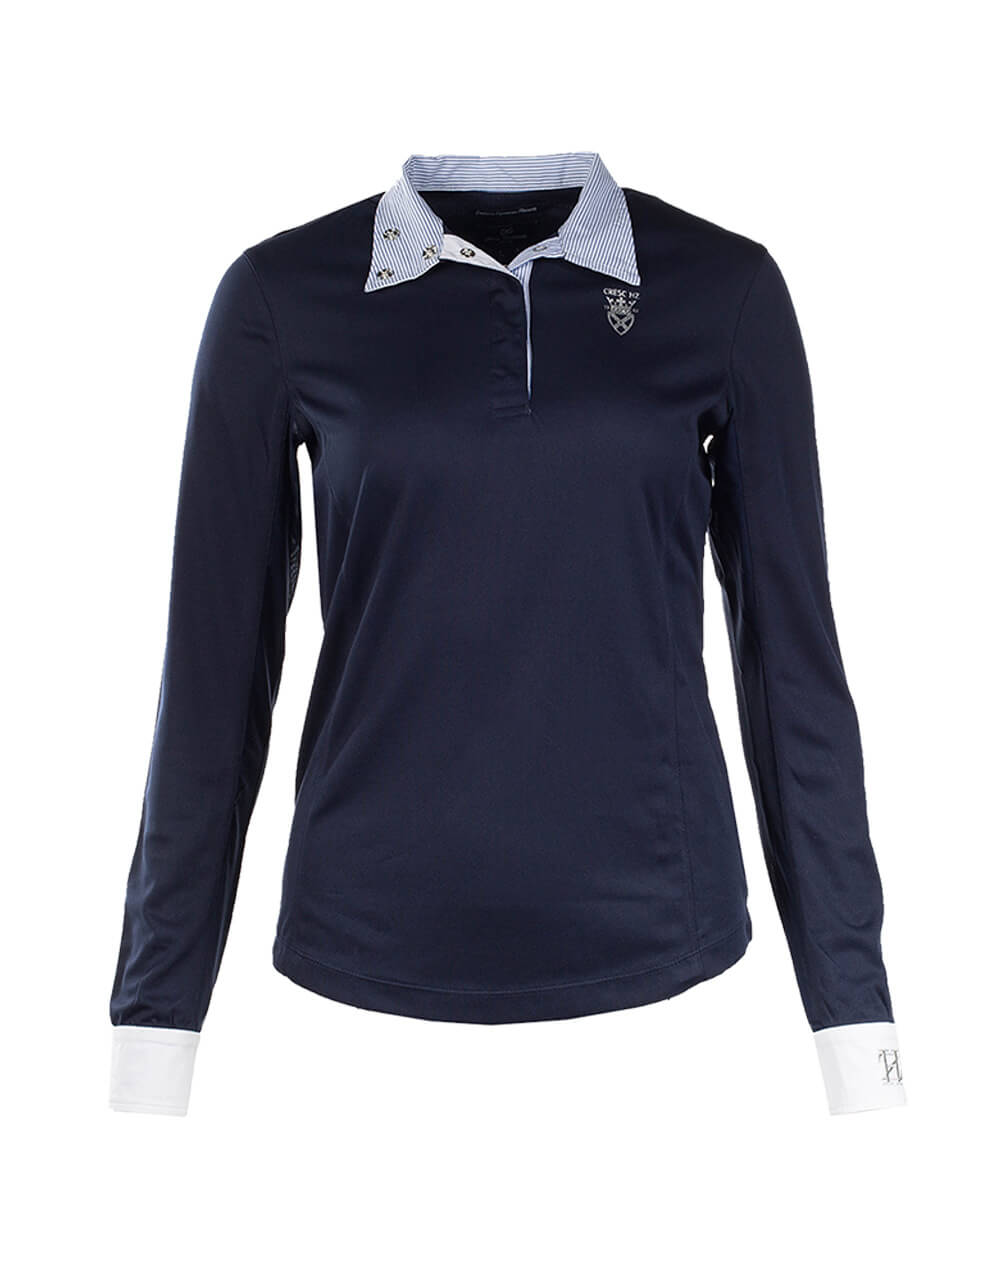 Light breathable long sleeved fitted show shirt with mesh under arms and flip down pattern collar that can be buttoned up with clip buttons. Long sleeves with clip buttons at cuffs